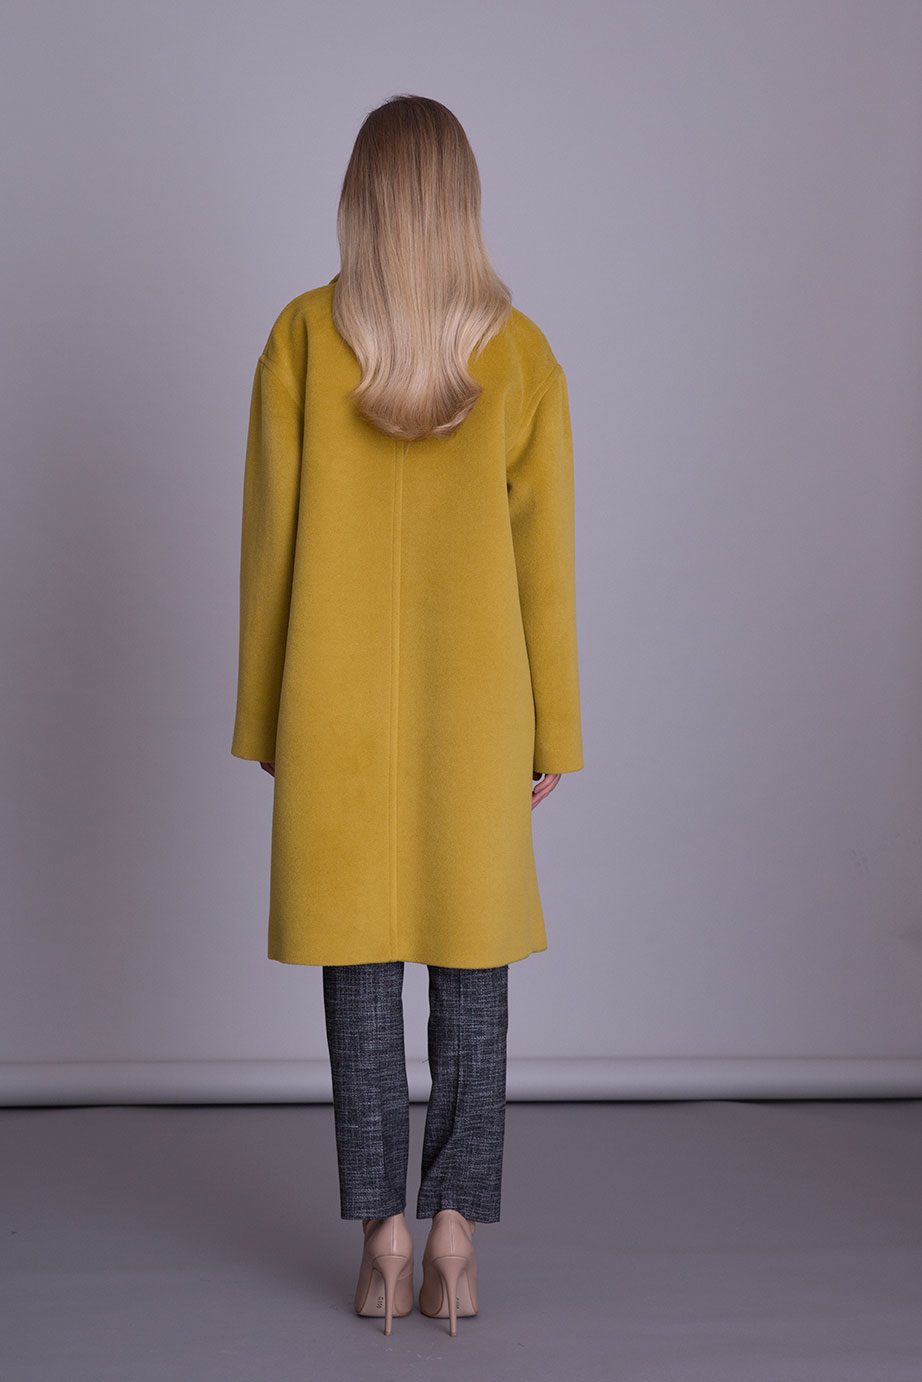 Pocket and Button Detailed Mustard Yellow Midi Coat